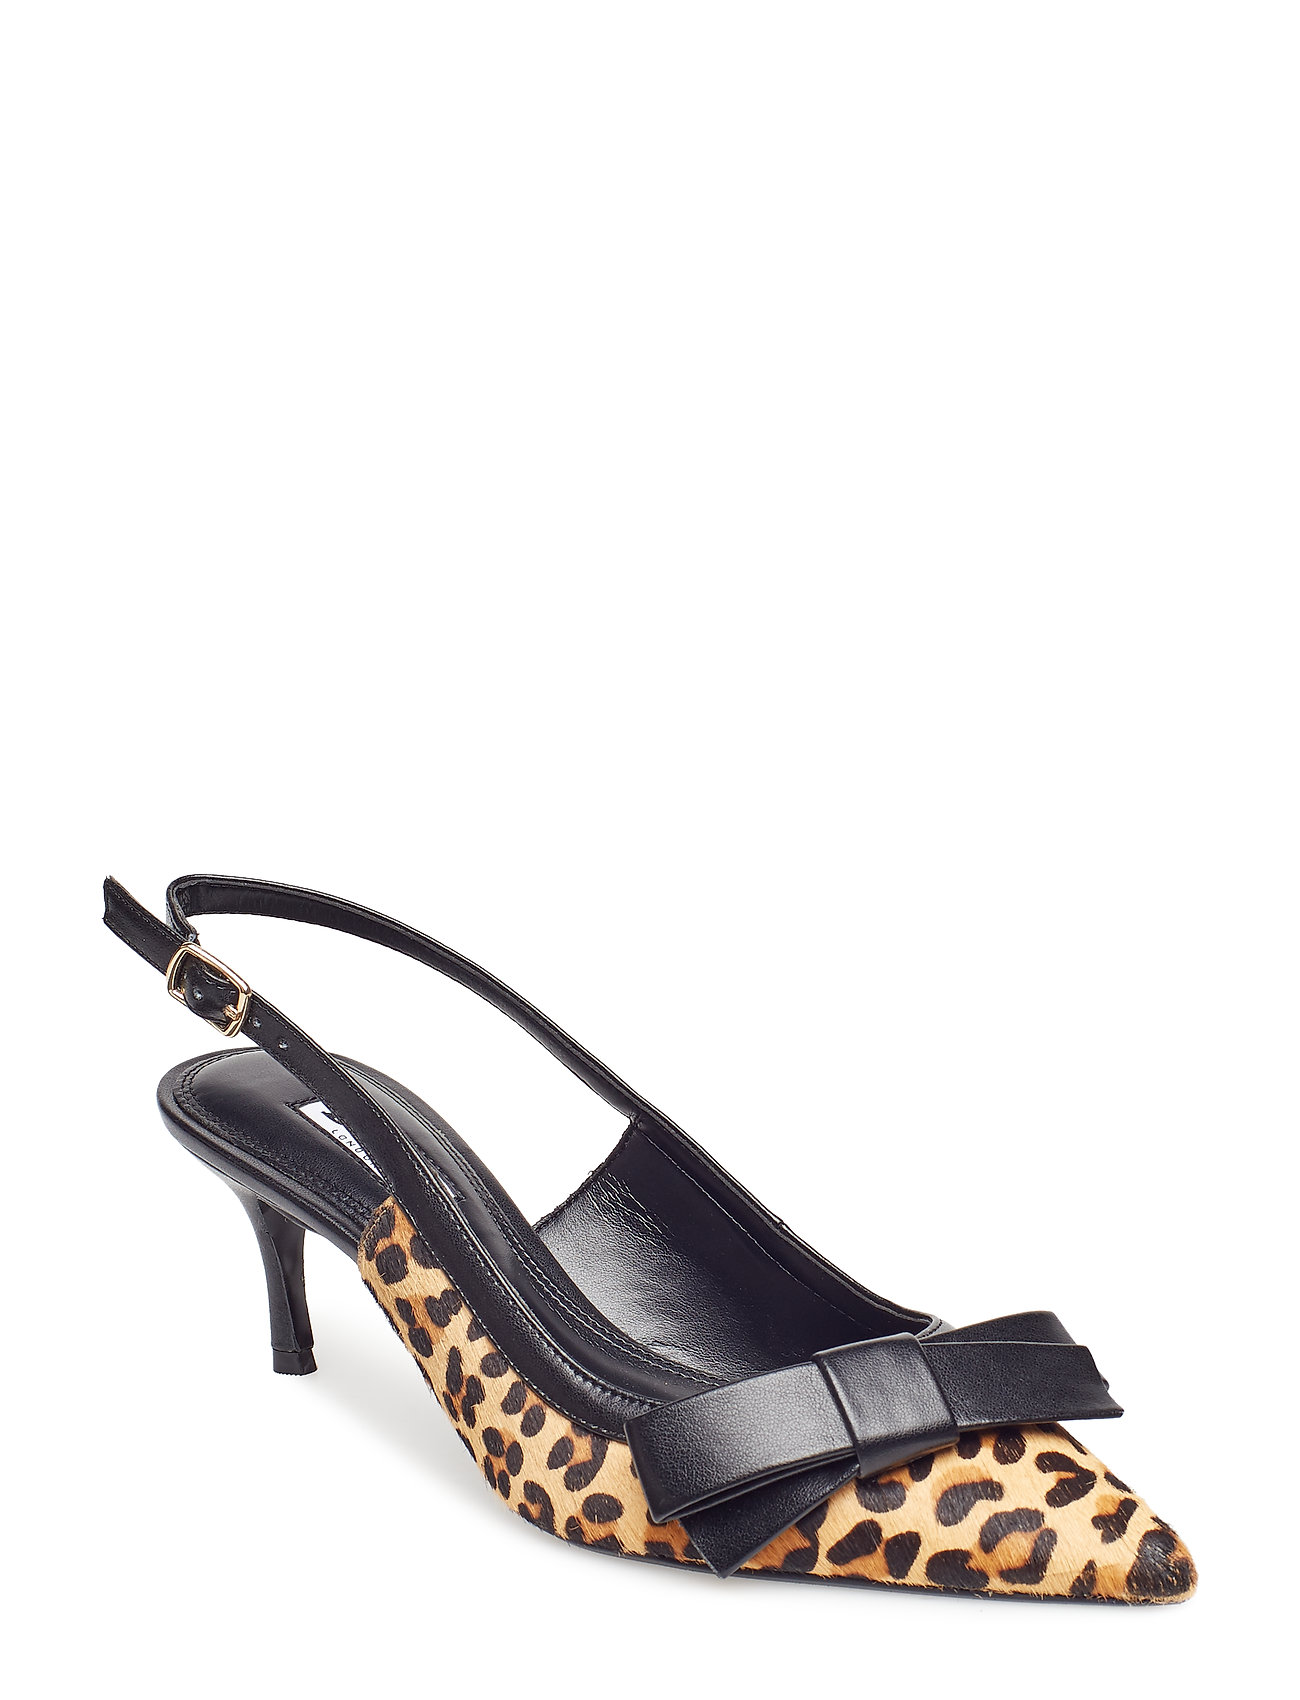 Dune London CLEMMIEE - LEOPARD-LEATHER